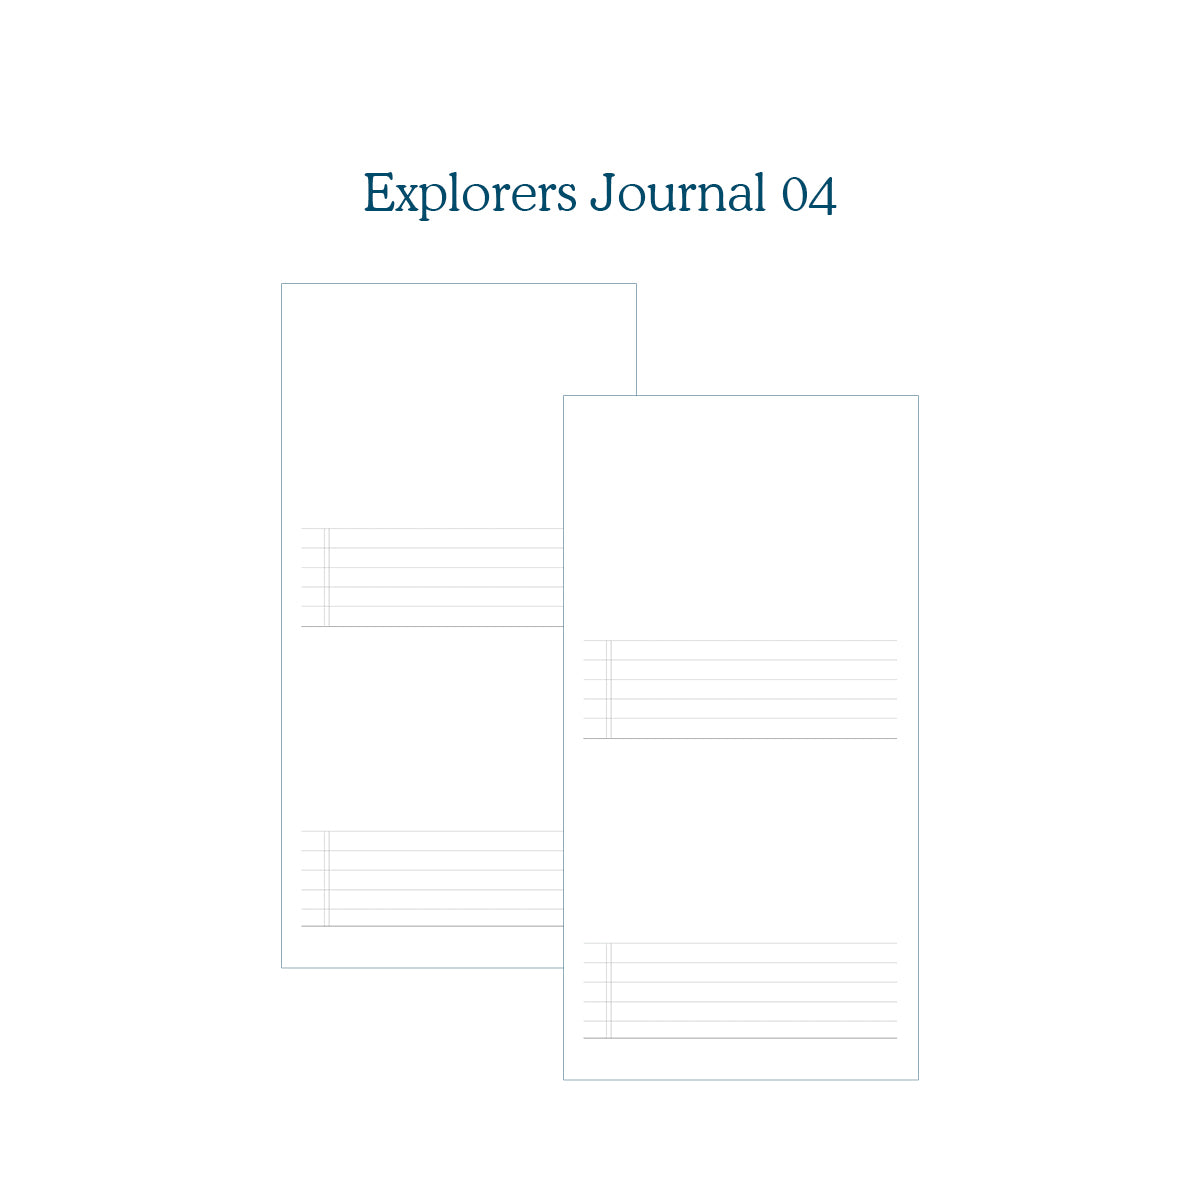 Explorers Journal 04 - TN Insert (New Version!)